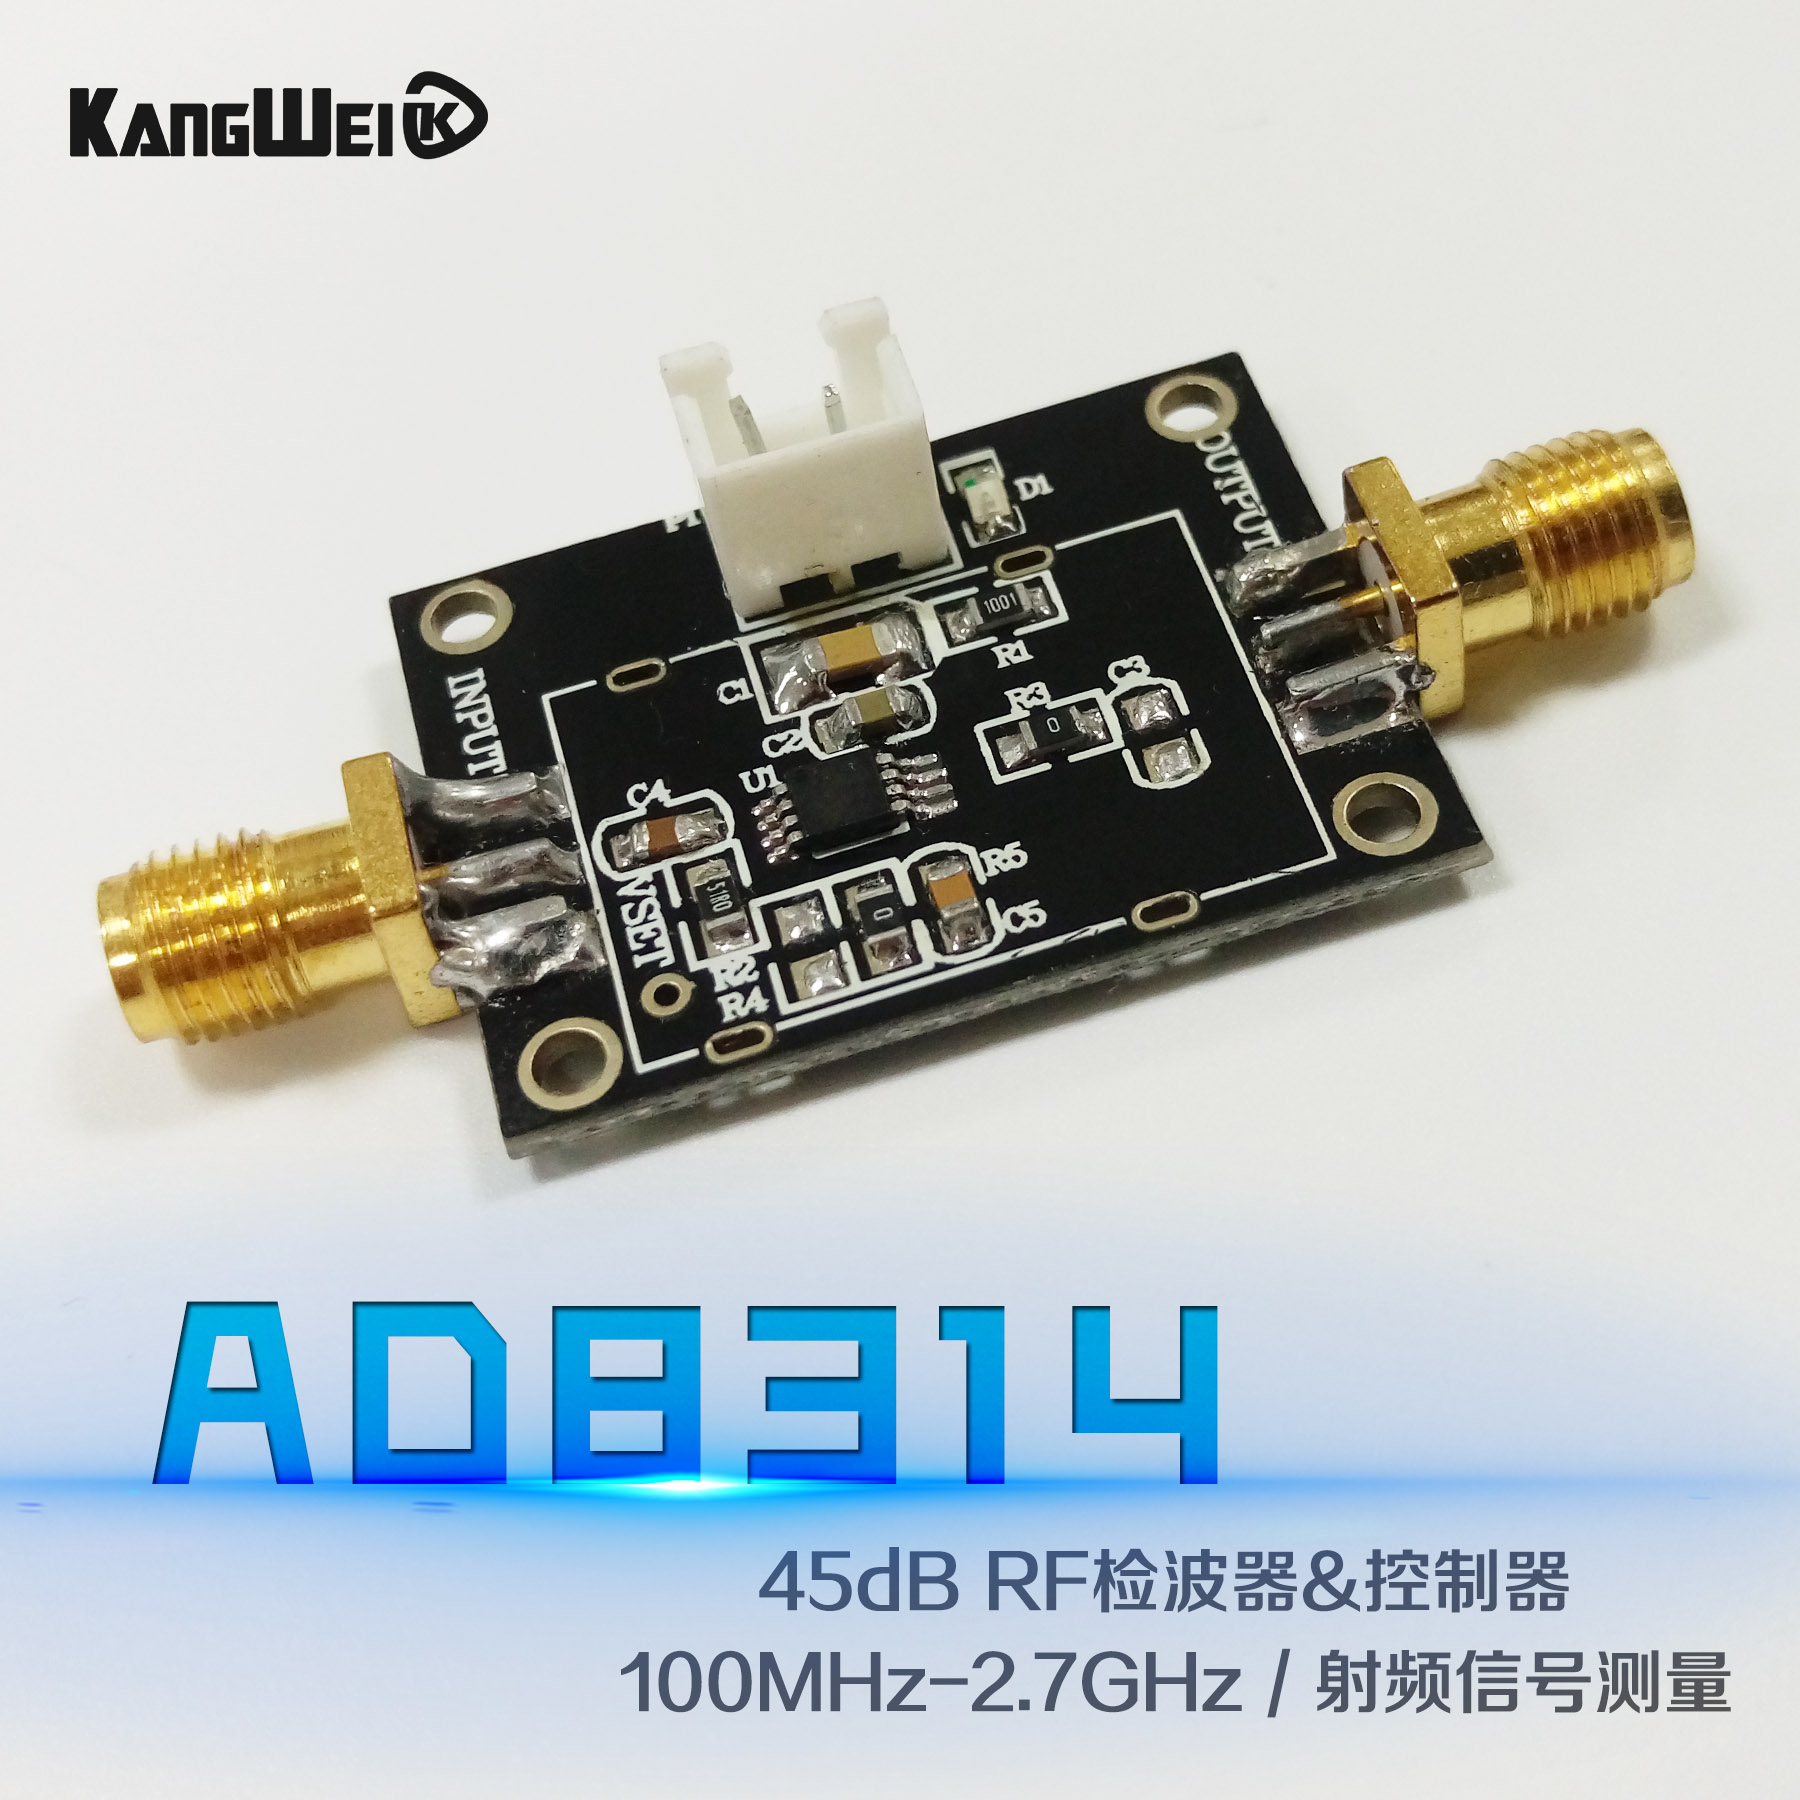 AD8314 module 45dB RF detector / controller 100MHz-2.7GHz radio frequency signal measurement ad8314 module 45db rf detector controller 100mhz 2 7ghz radio frequency signal measurement